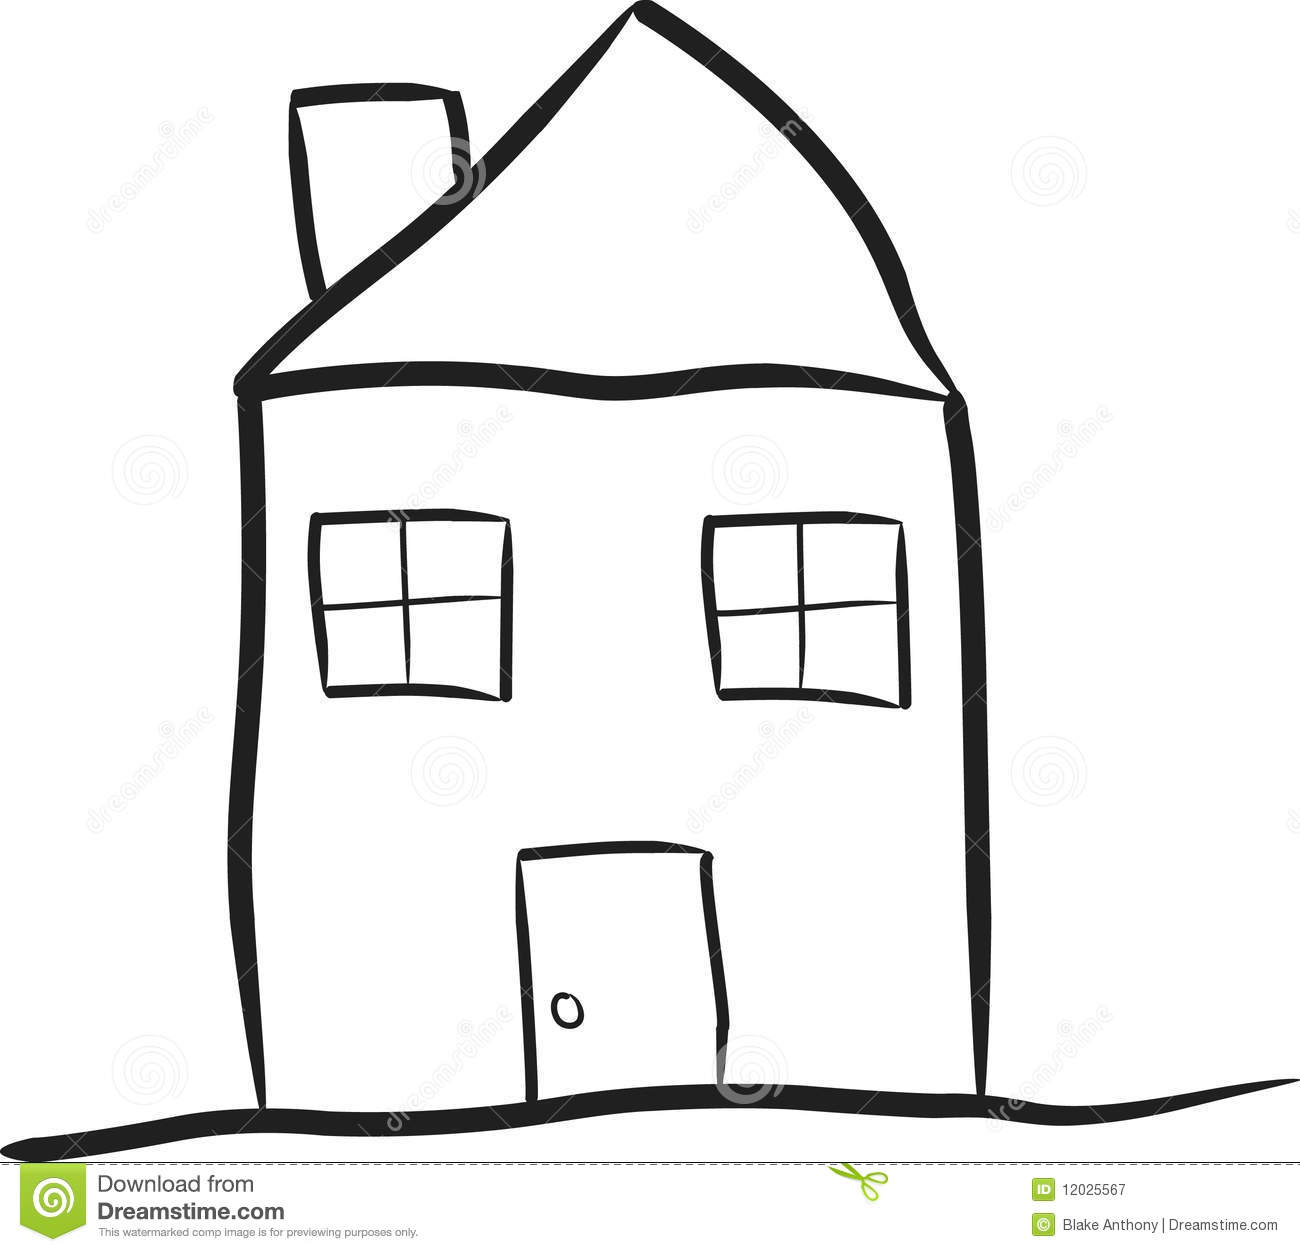 line drawing house clipart #3